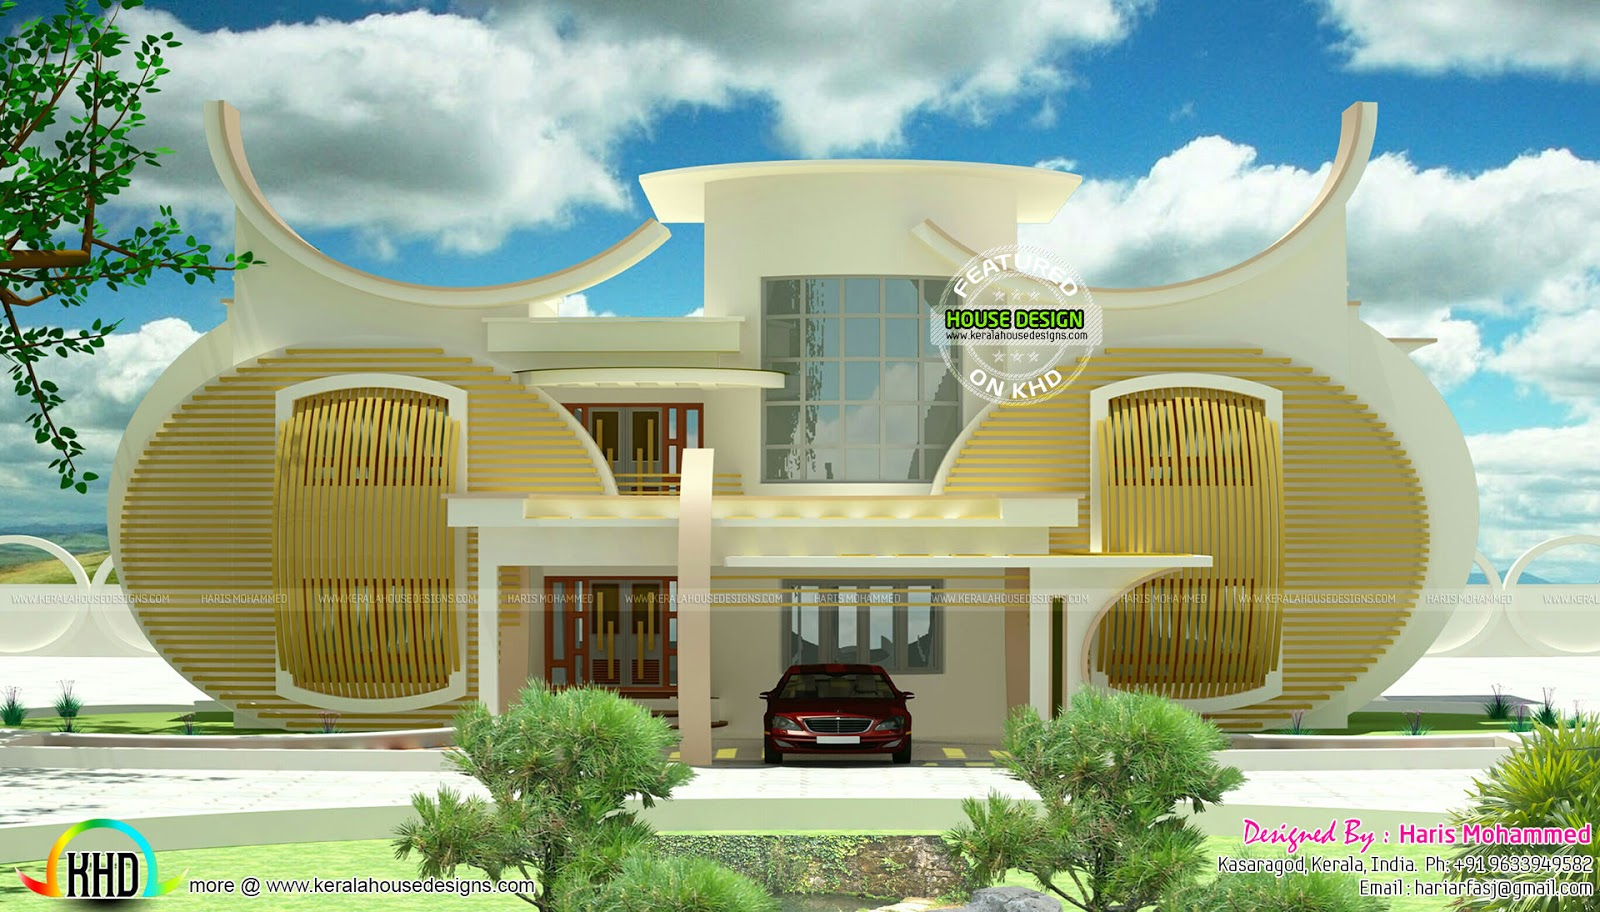 Strange circular home design kerala home design and for Design this house